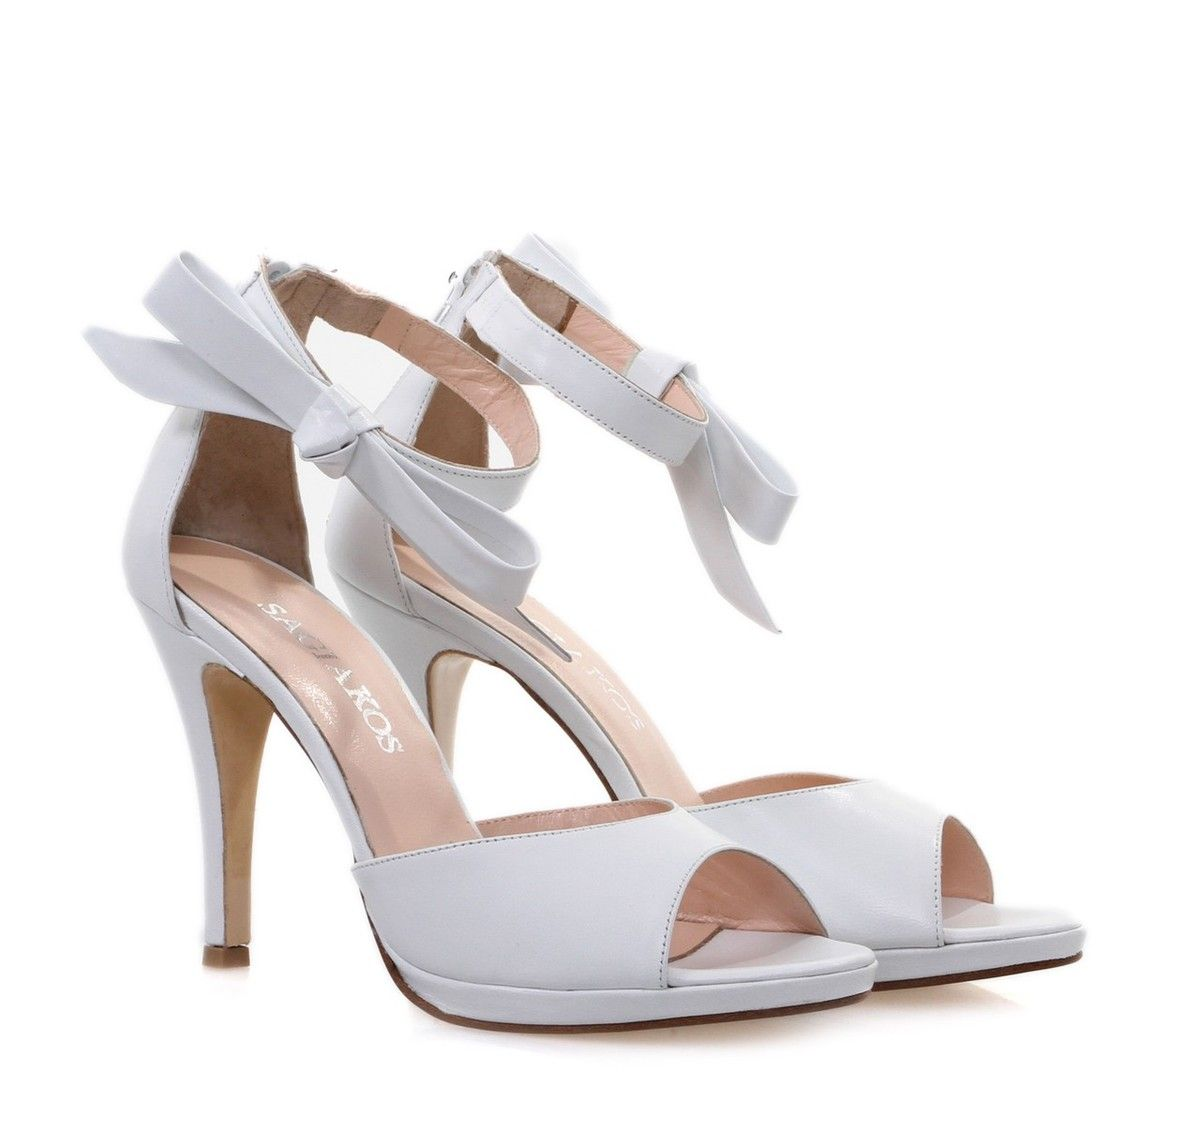 bbbb11665af SAGIAKOS White Bridal Leather Peep-toe High-heeled Sandals. Γυναικεία  δερμάτινα λευκά νυφικά